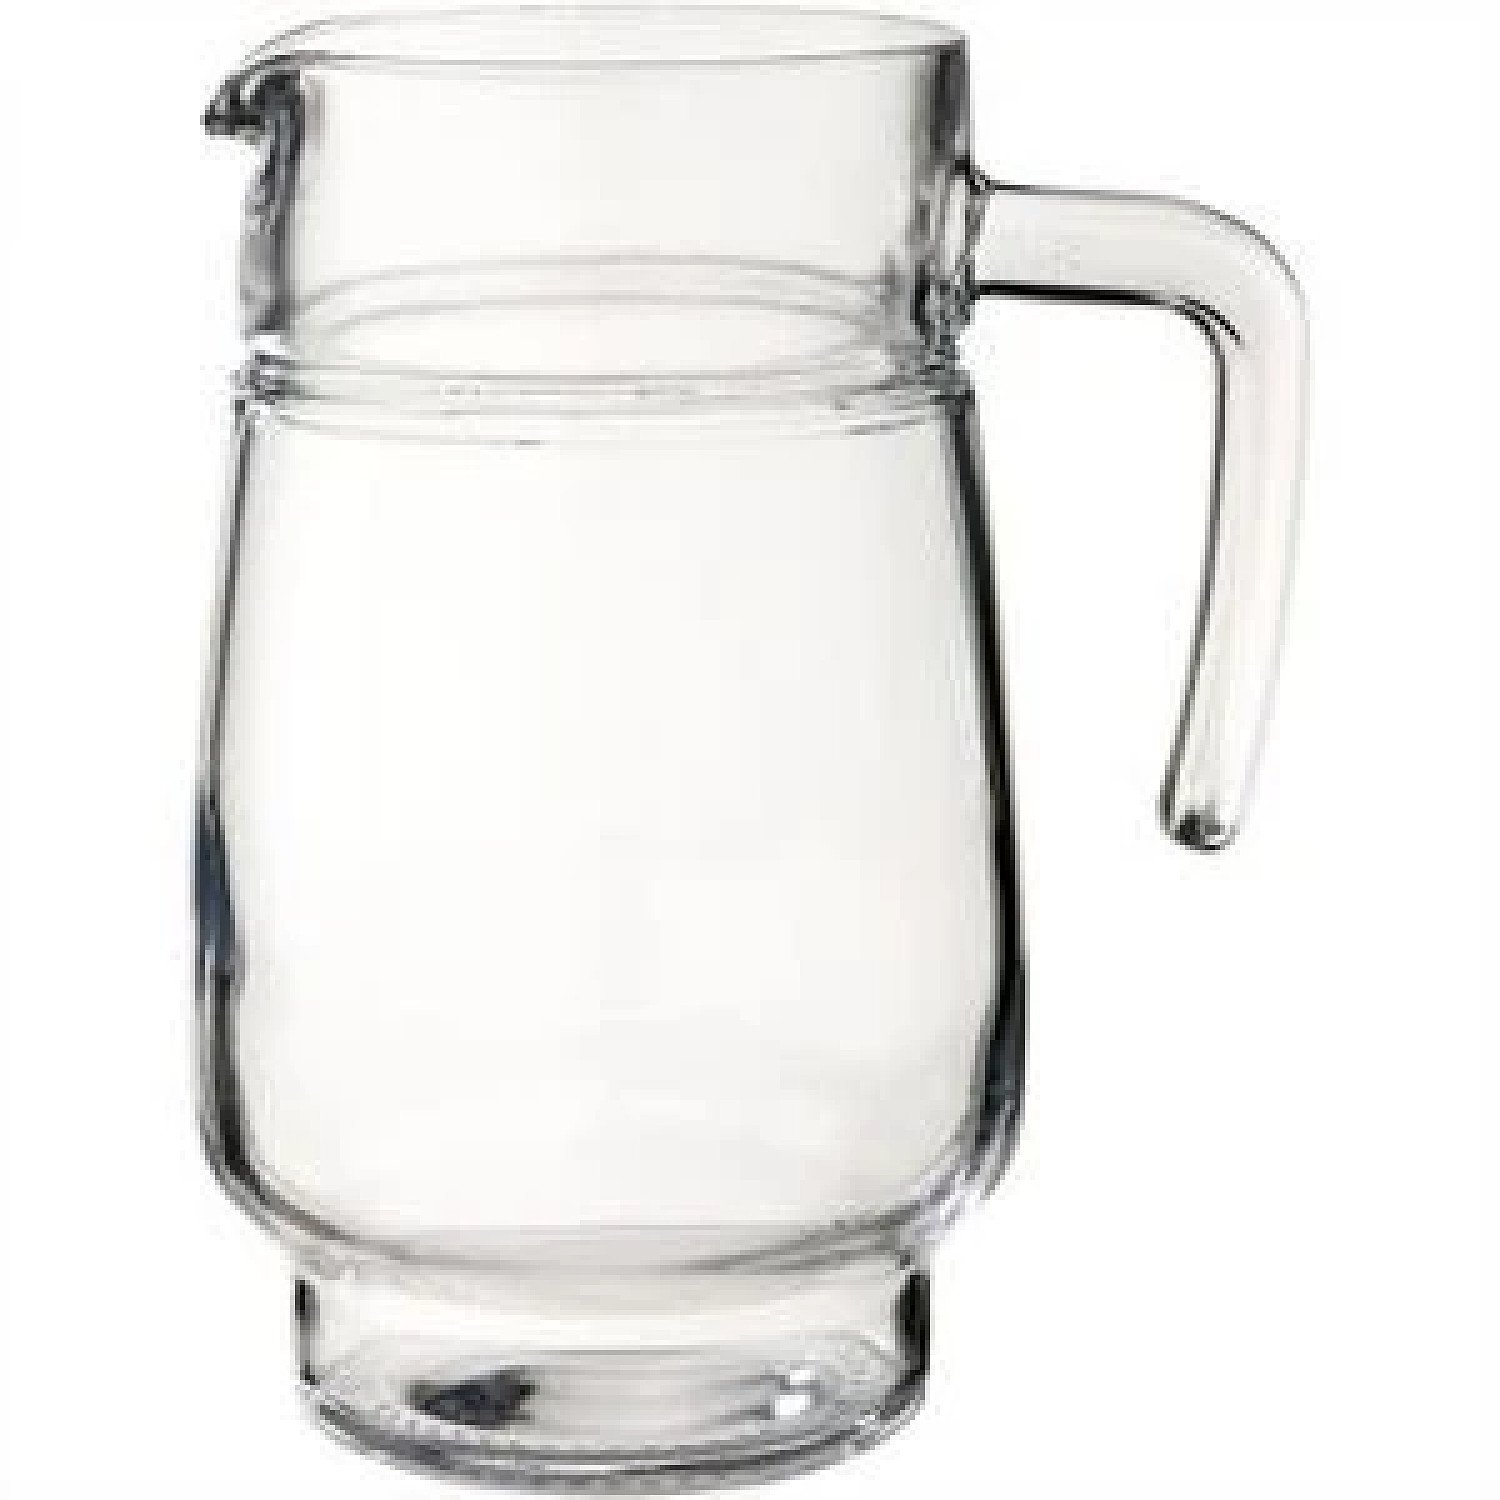 Tivoli Handled Ice Lipped Jug 1.6L Great For Home Or Restaurant Clear Glass £13.99 Free Postage